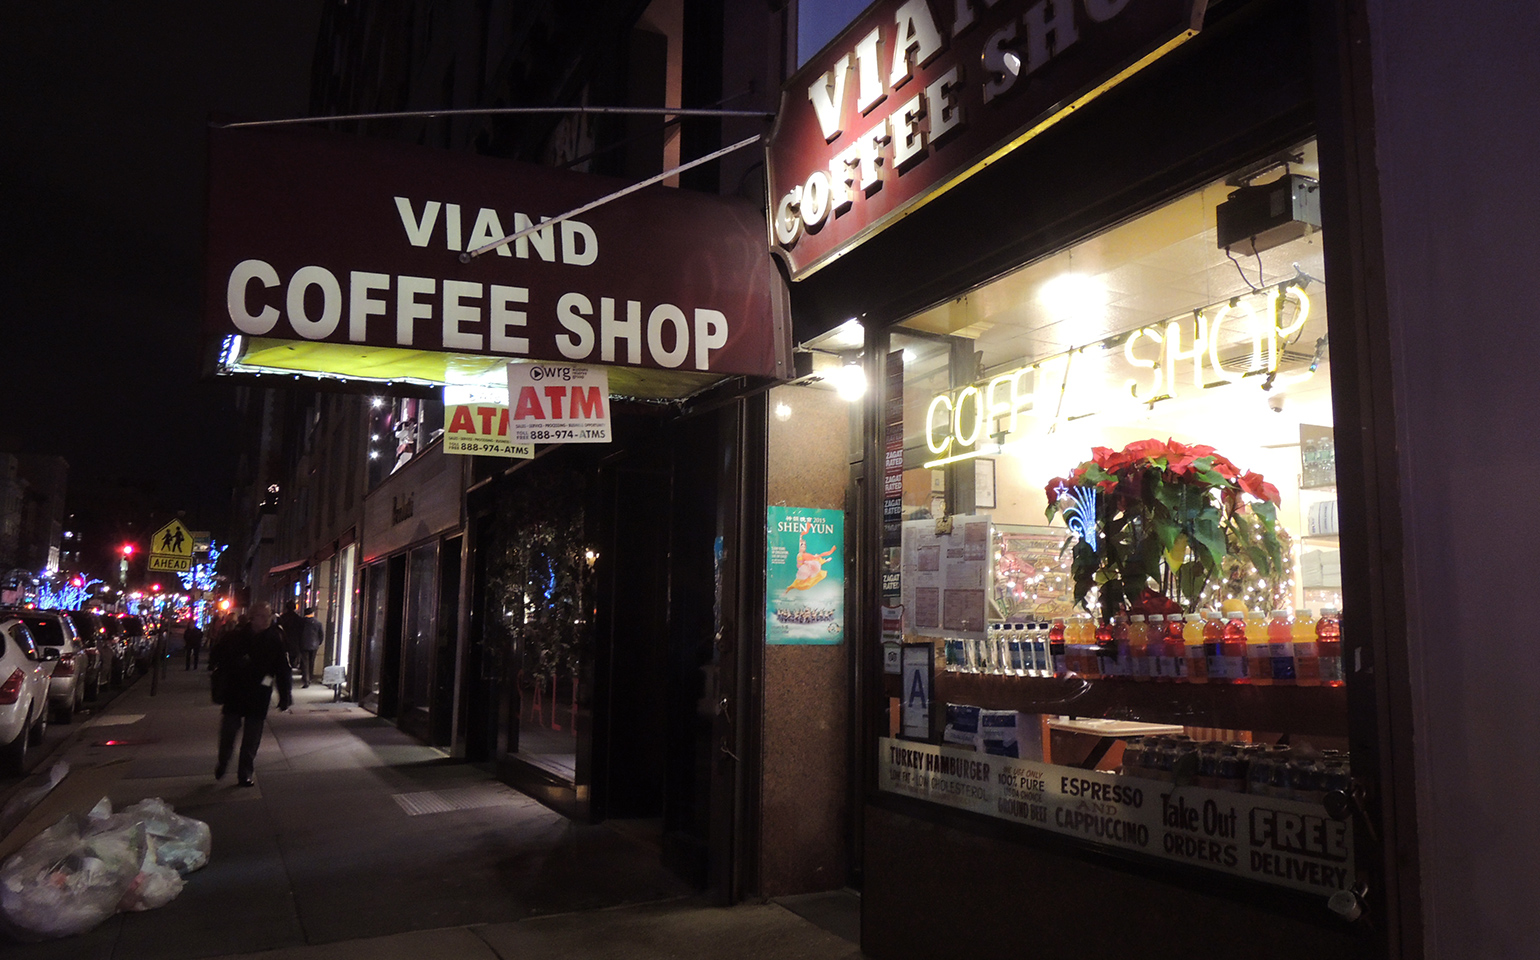 Viand Coffee Shop, 673 Madison Ave, New York, NY, United States